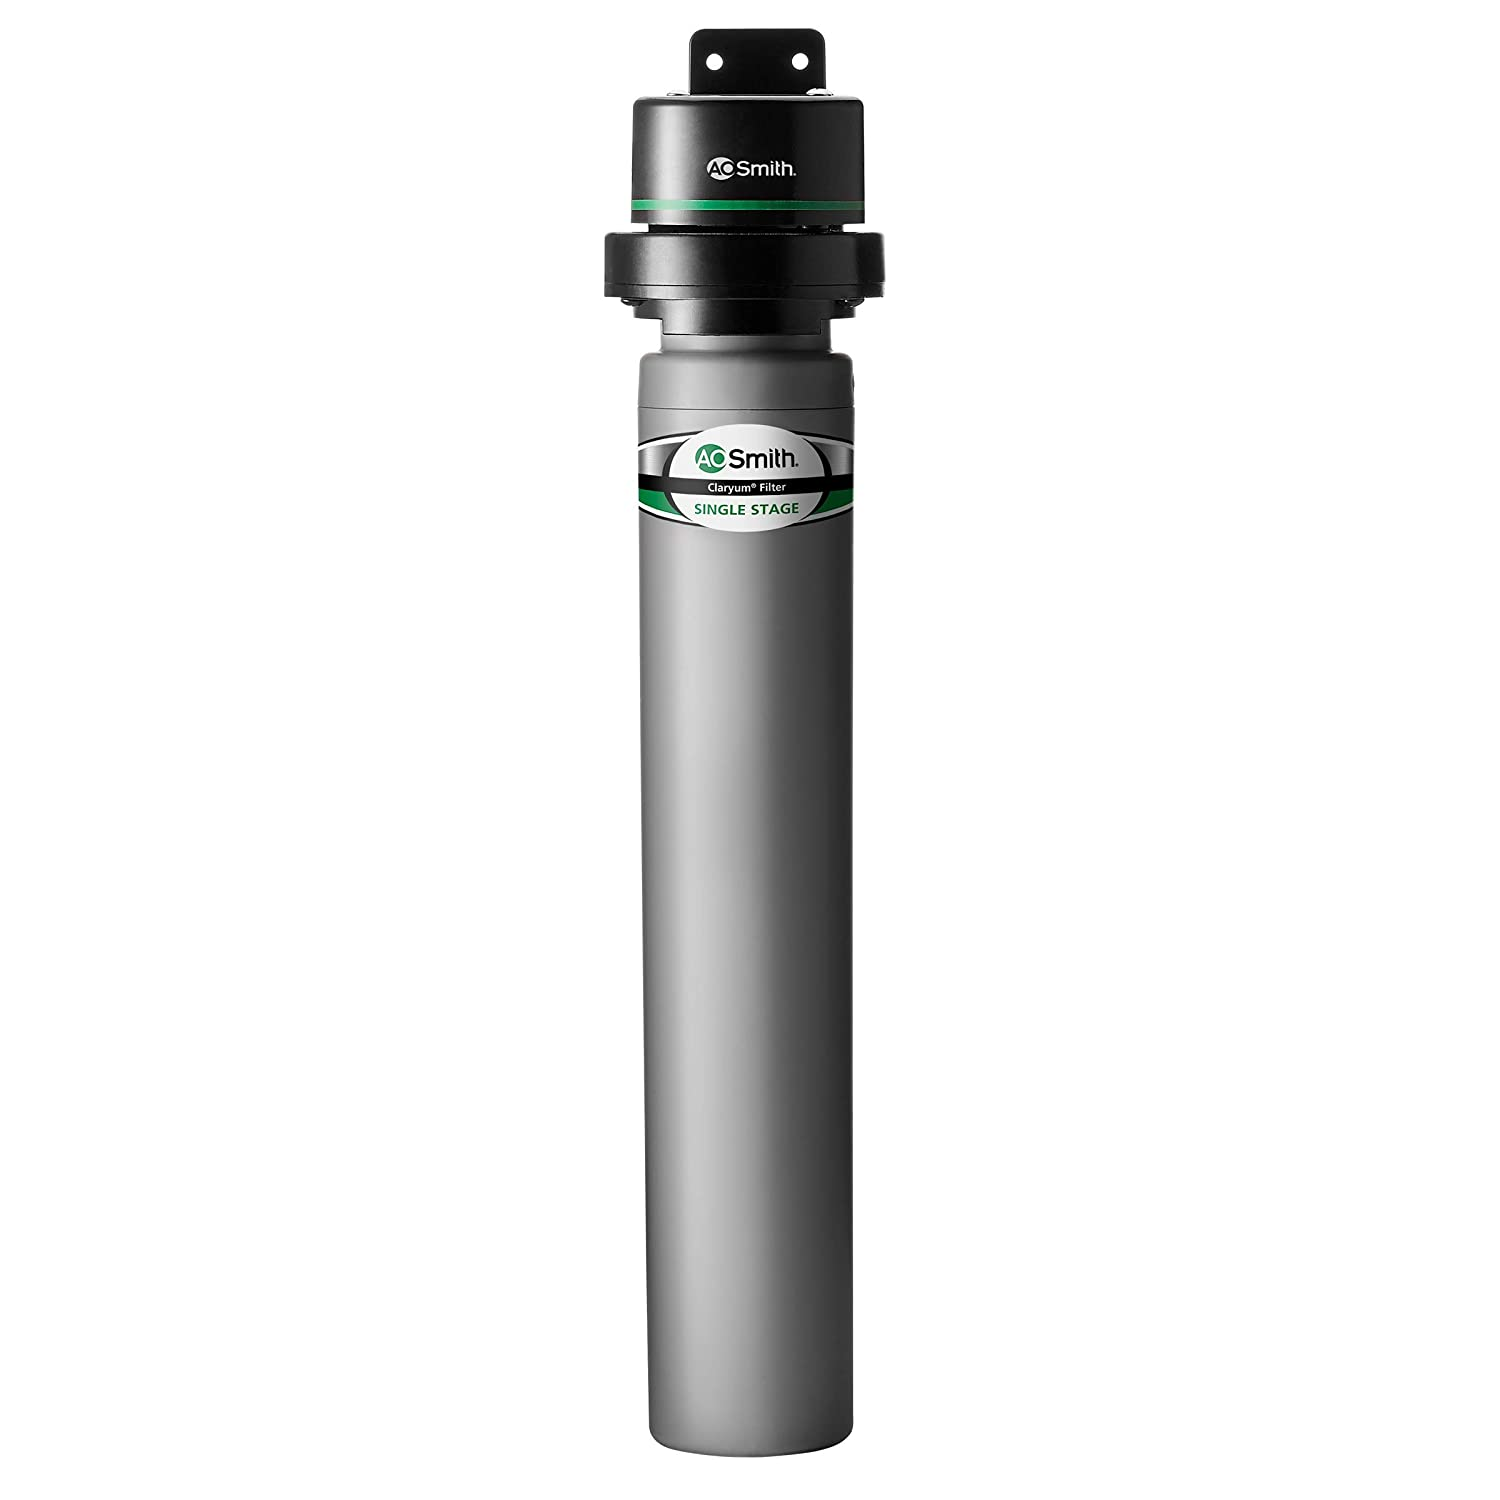 AO Smith Clean Water Single-Stage Under Sink Filter System - NSF Certified Carbon Block Filtration